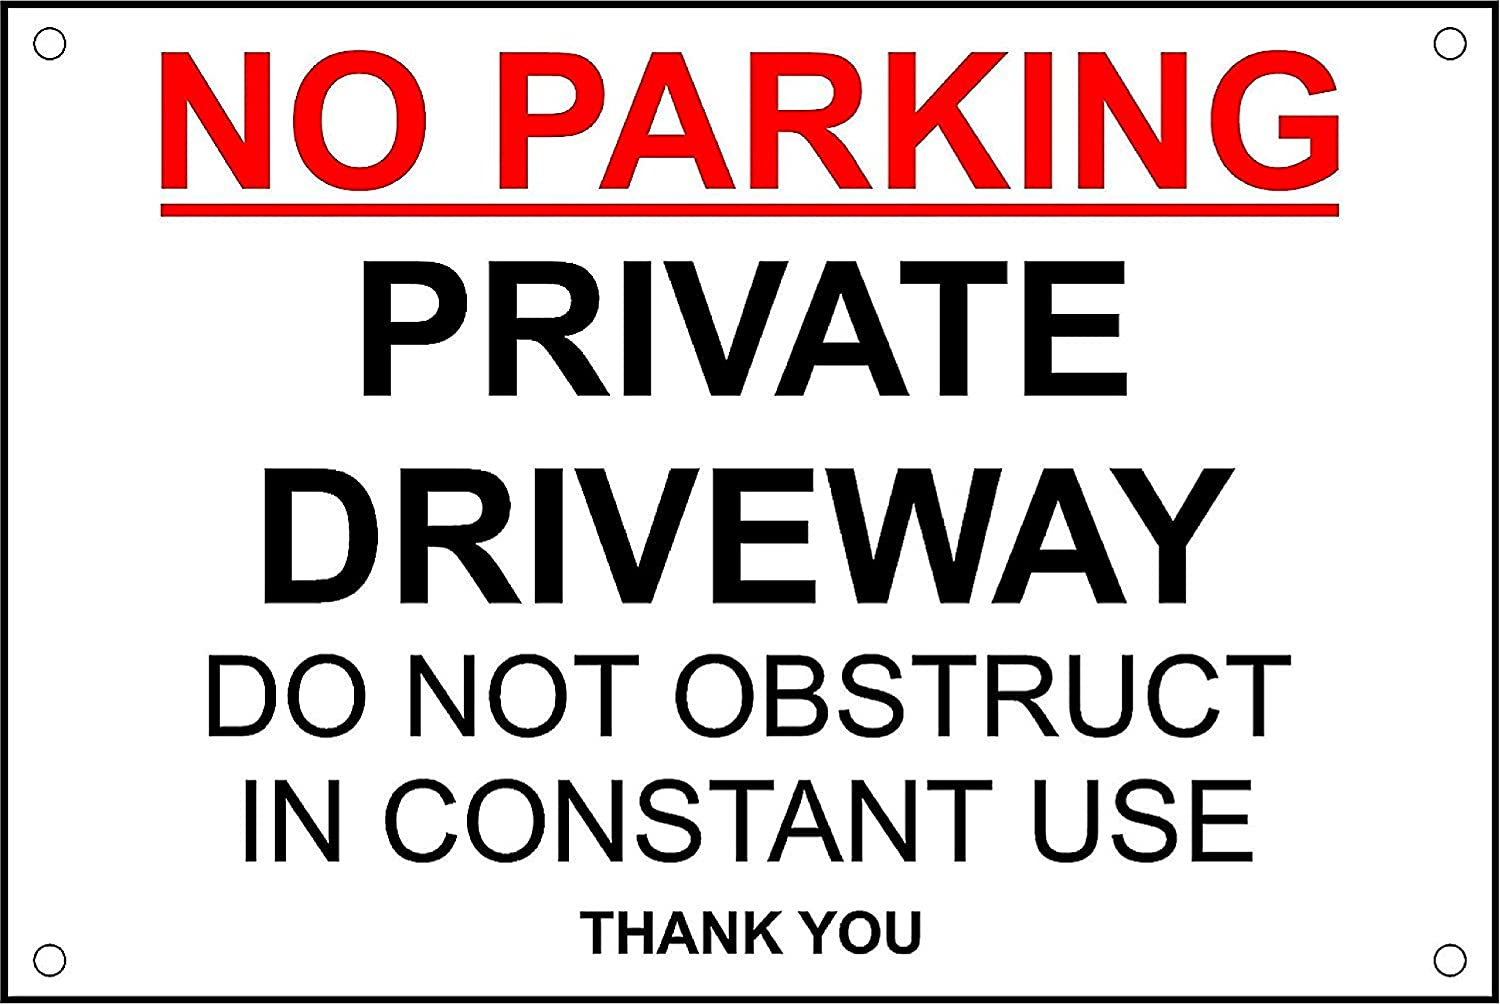 No Parking Private Driveway Do Not Obstruct in Constant Use safety sign - 3mm Aluminium sign 300mm x 200mm KPCM Display